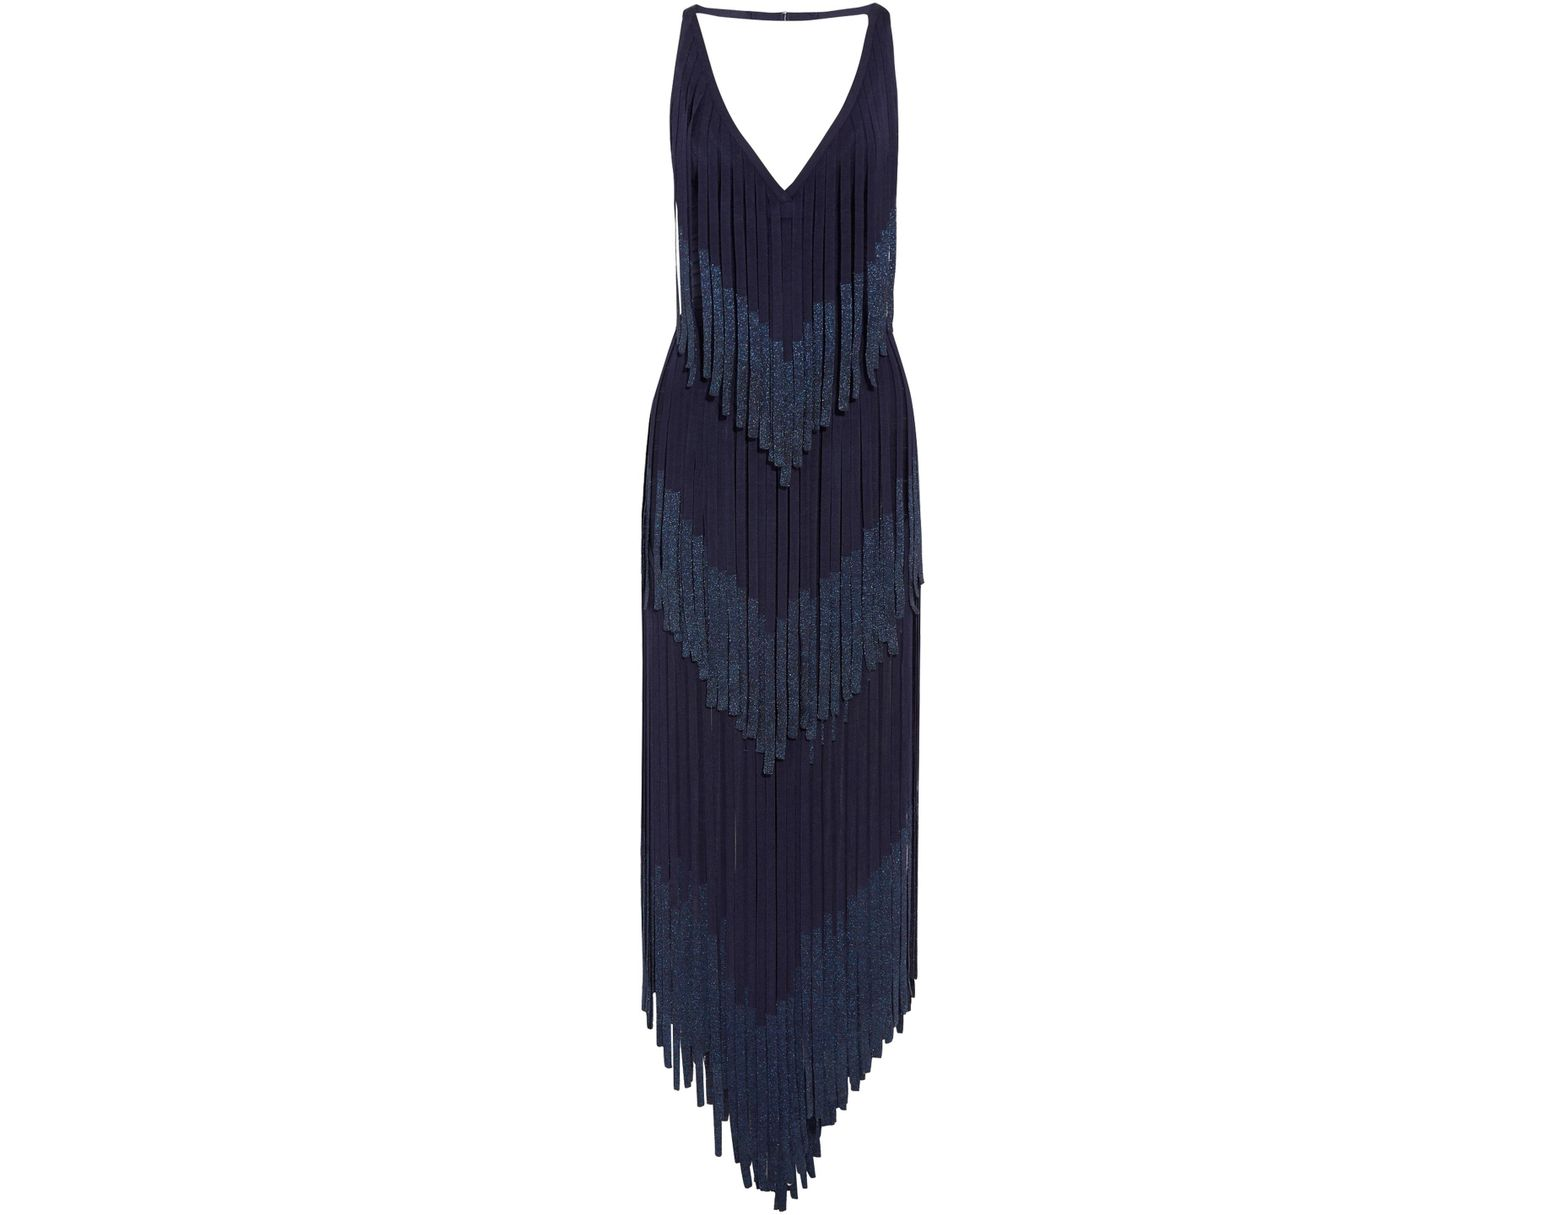 3b8ce9e0a76 Hervé Léger Hervé Léger Woman Izabel Open-back Fringed Metallic Bandage  Midi Dress Midnight Blue in Blue - Lyst